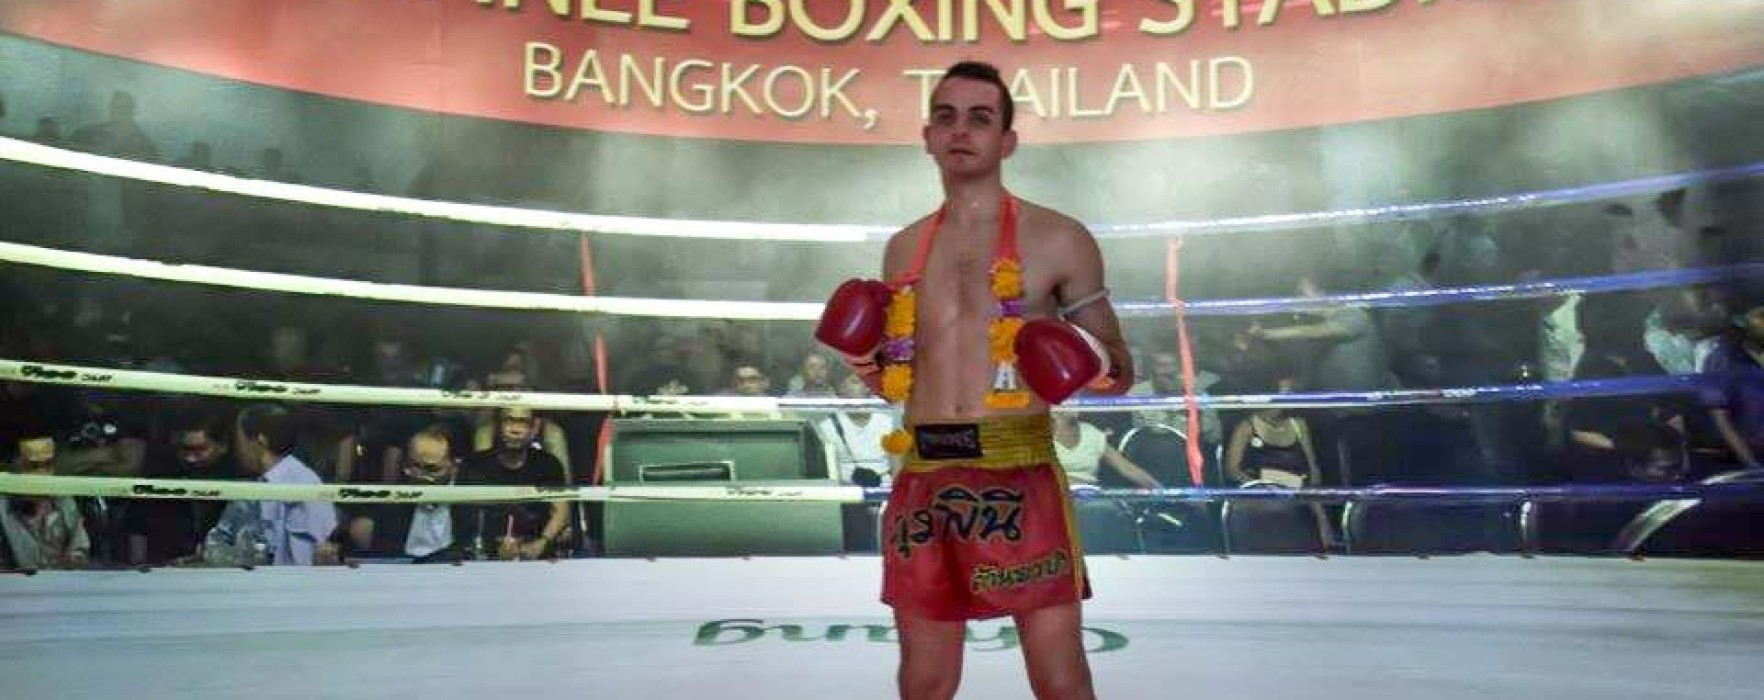 Gery Muay Farang wins at the New Lumpinee Stadium